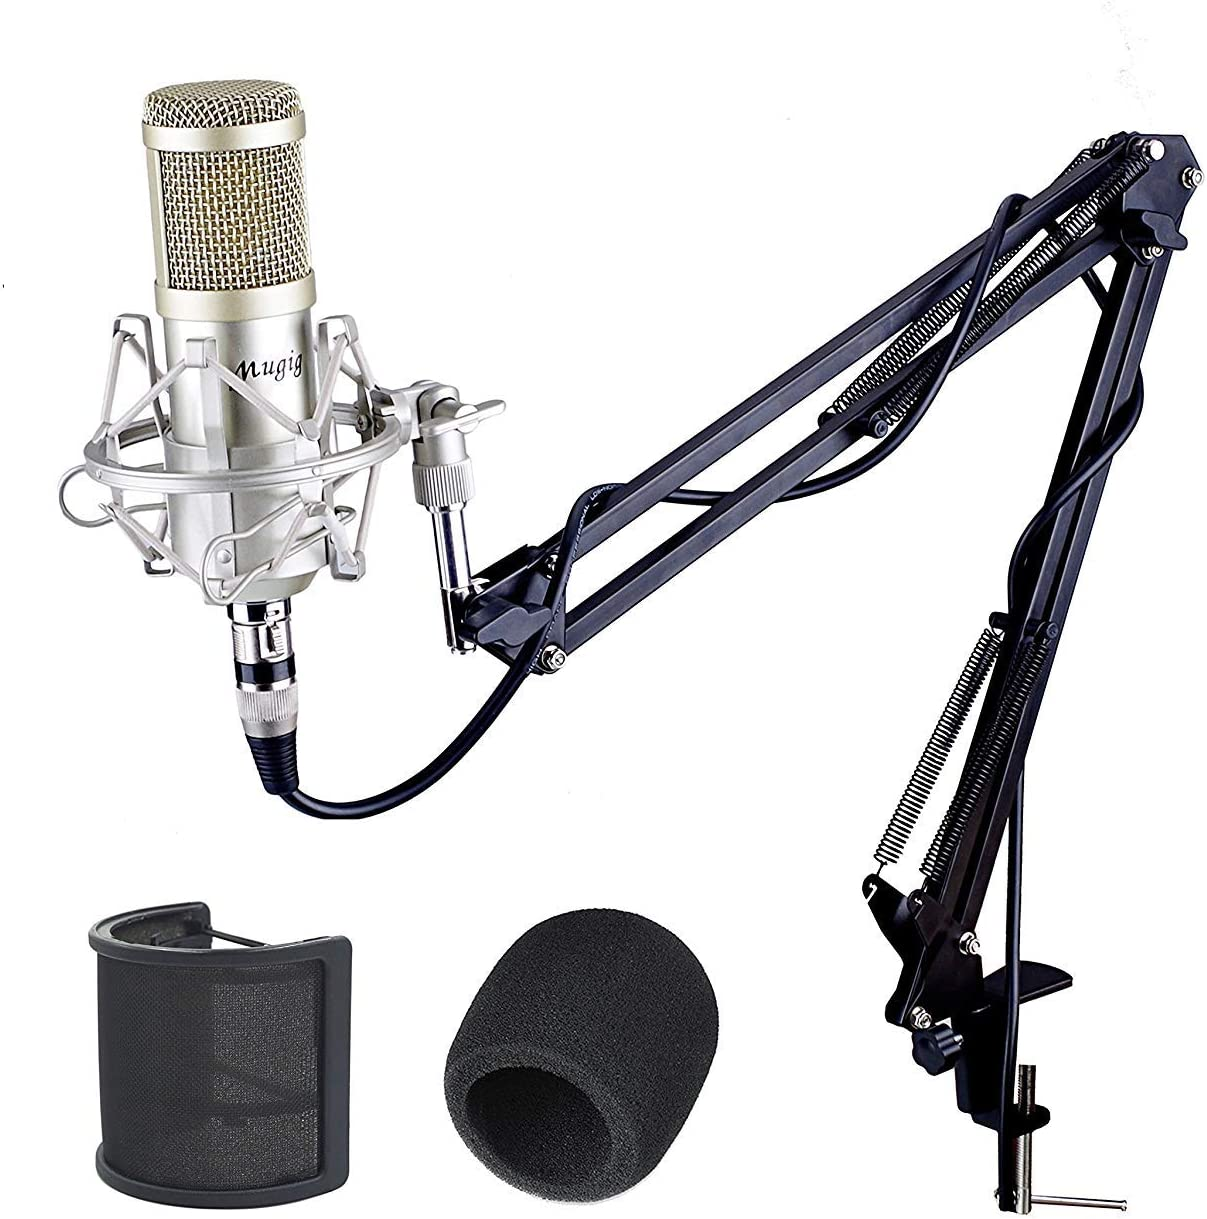 Mugig Condenser Microphone Professional Studio Microphone with Scissor Arm Stand// 3.5mm XLR Cable//Shock Mount//Pop Filter for Professional Studio Recording Podcasting Broadcasting